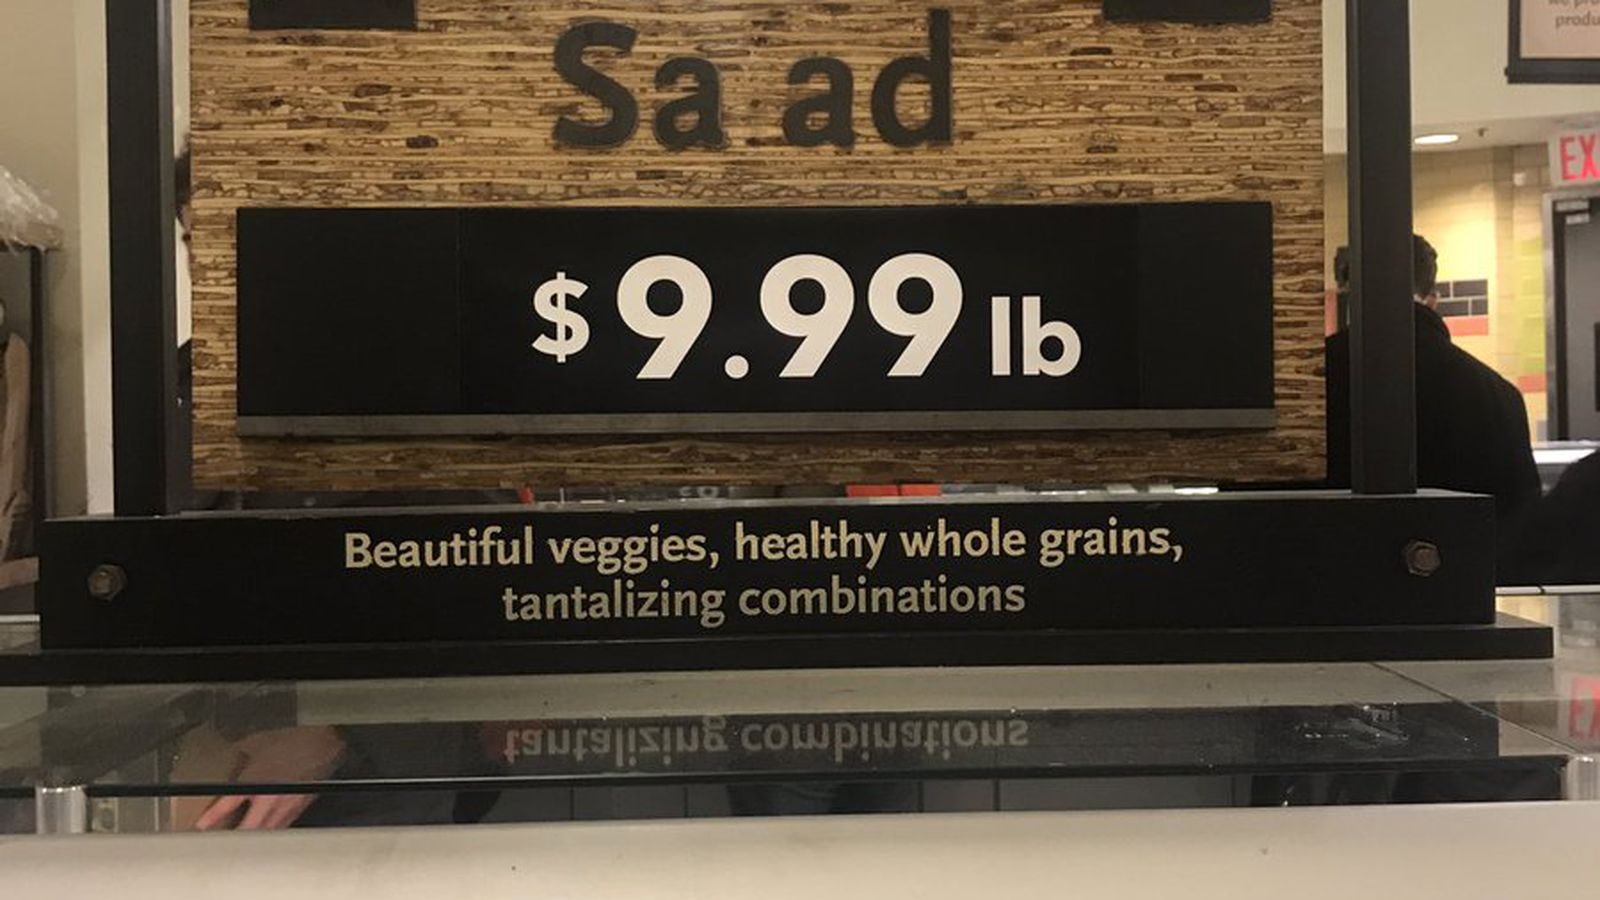 Whole Foods Union Square Twitter